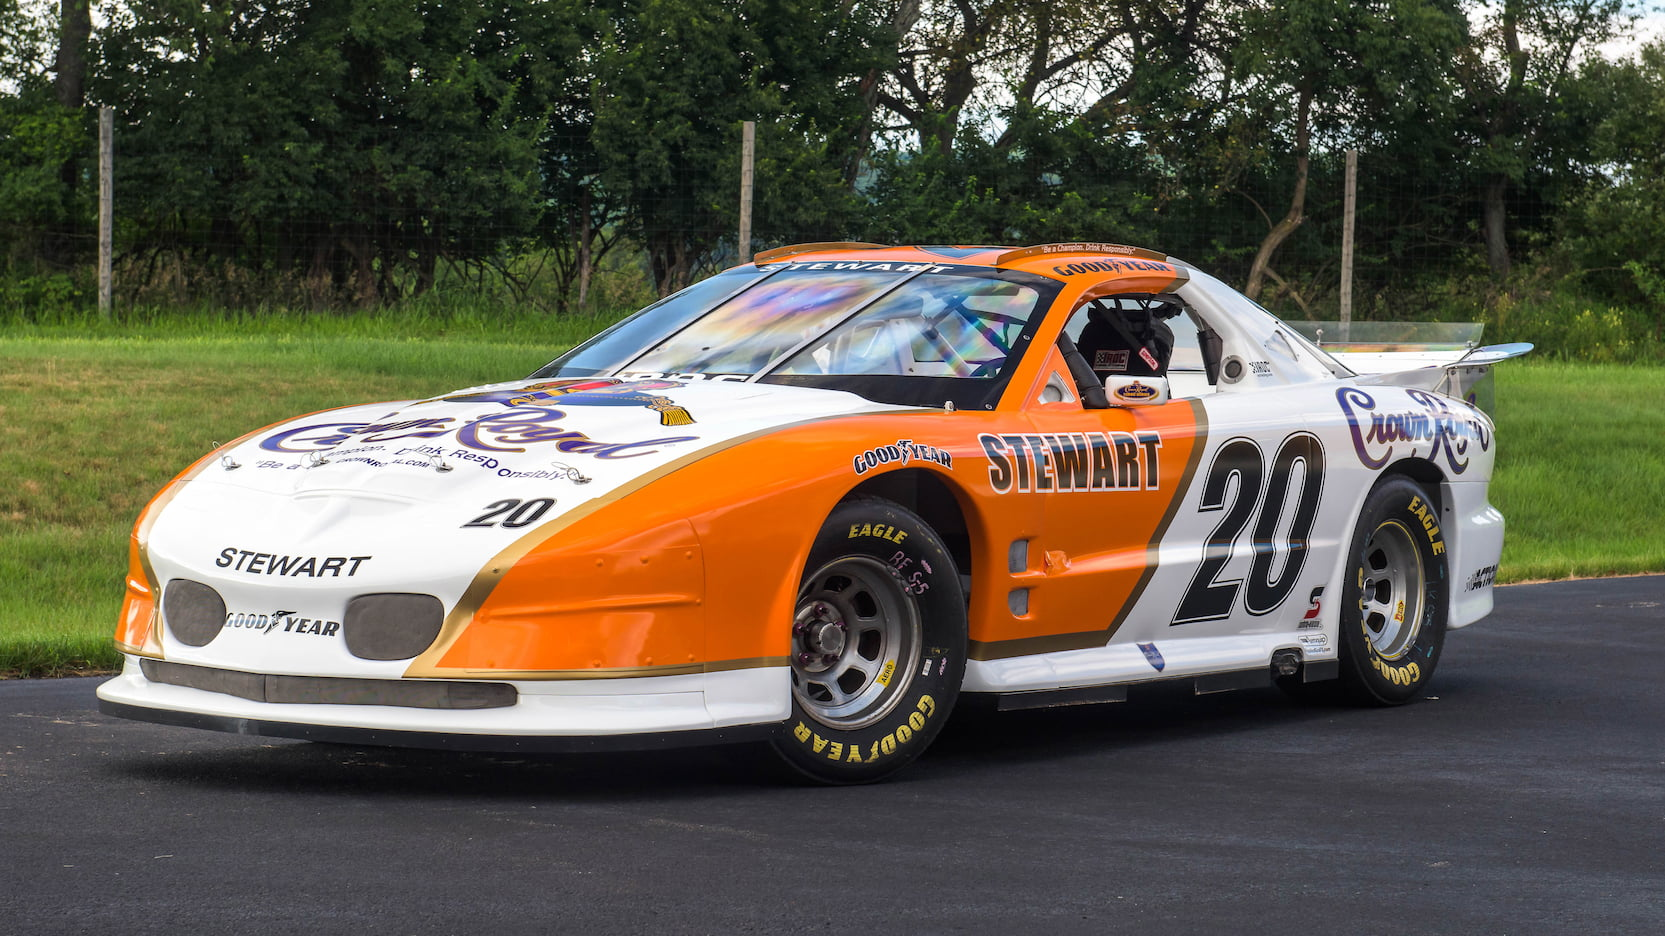 1996 Pontiac Firebird Trans AM IROC race car